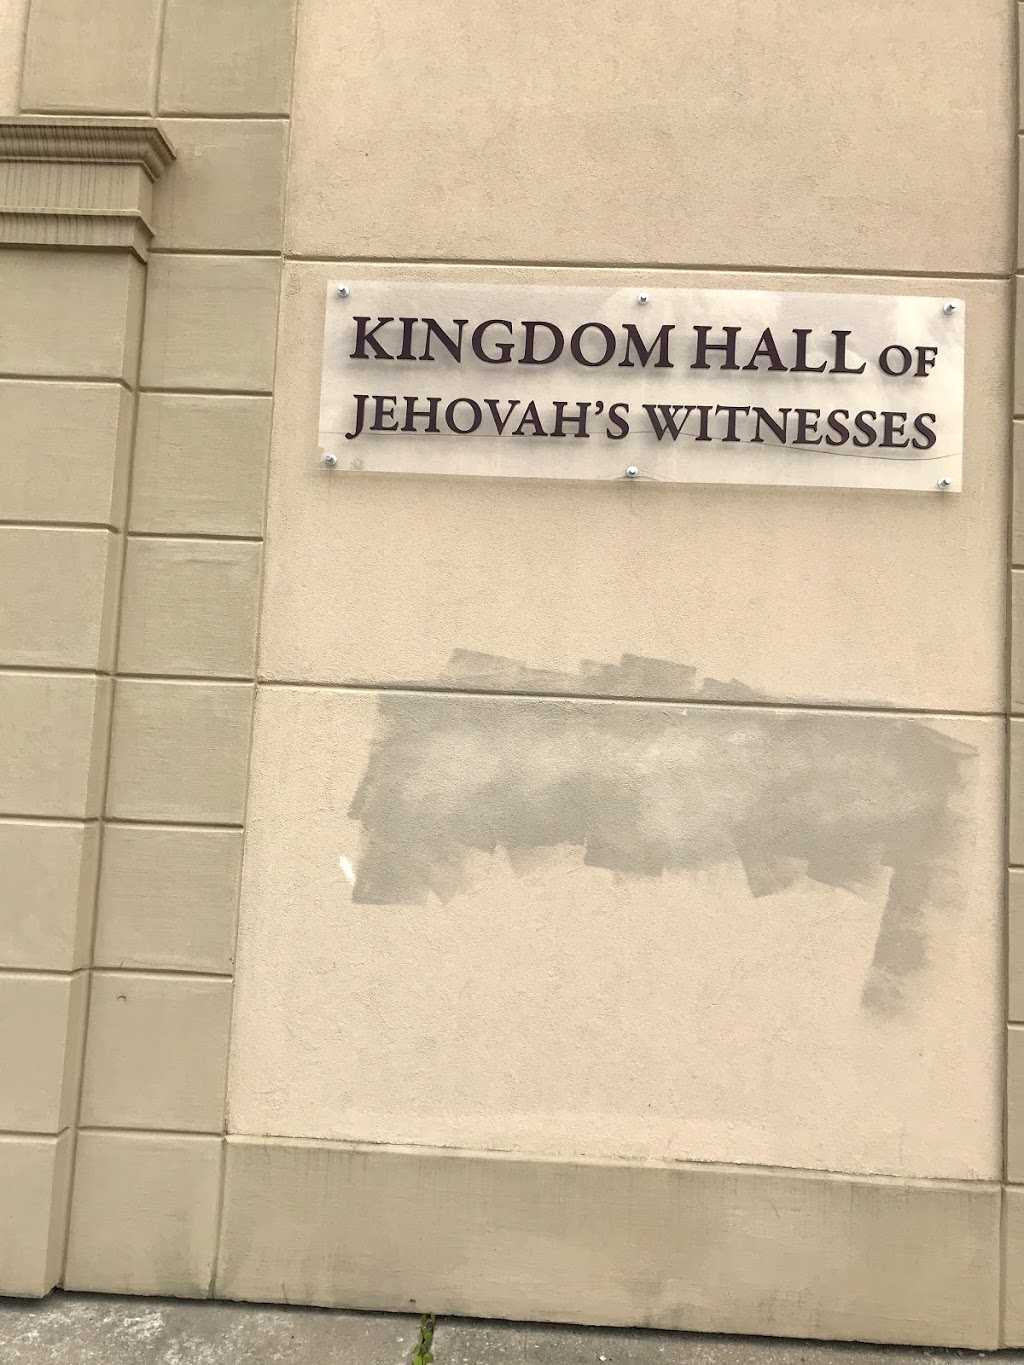 Kingdom Hall of Jehovahs Witnesses | church | 185 Swallow St, Waterloo, ON N2V 1R2, Canada | 5197460833 OR +1 519-746-0833